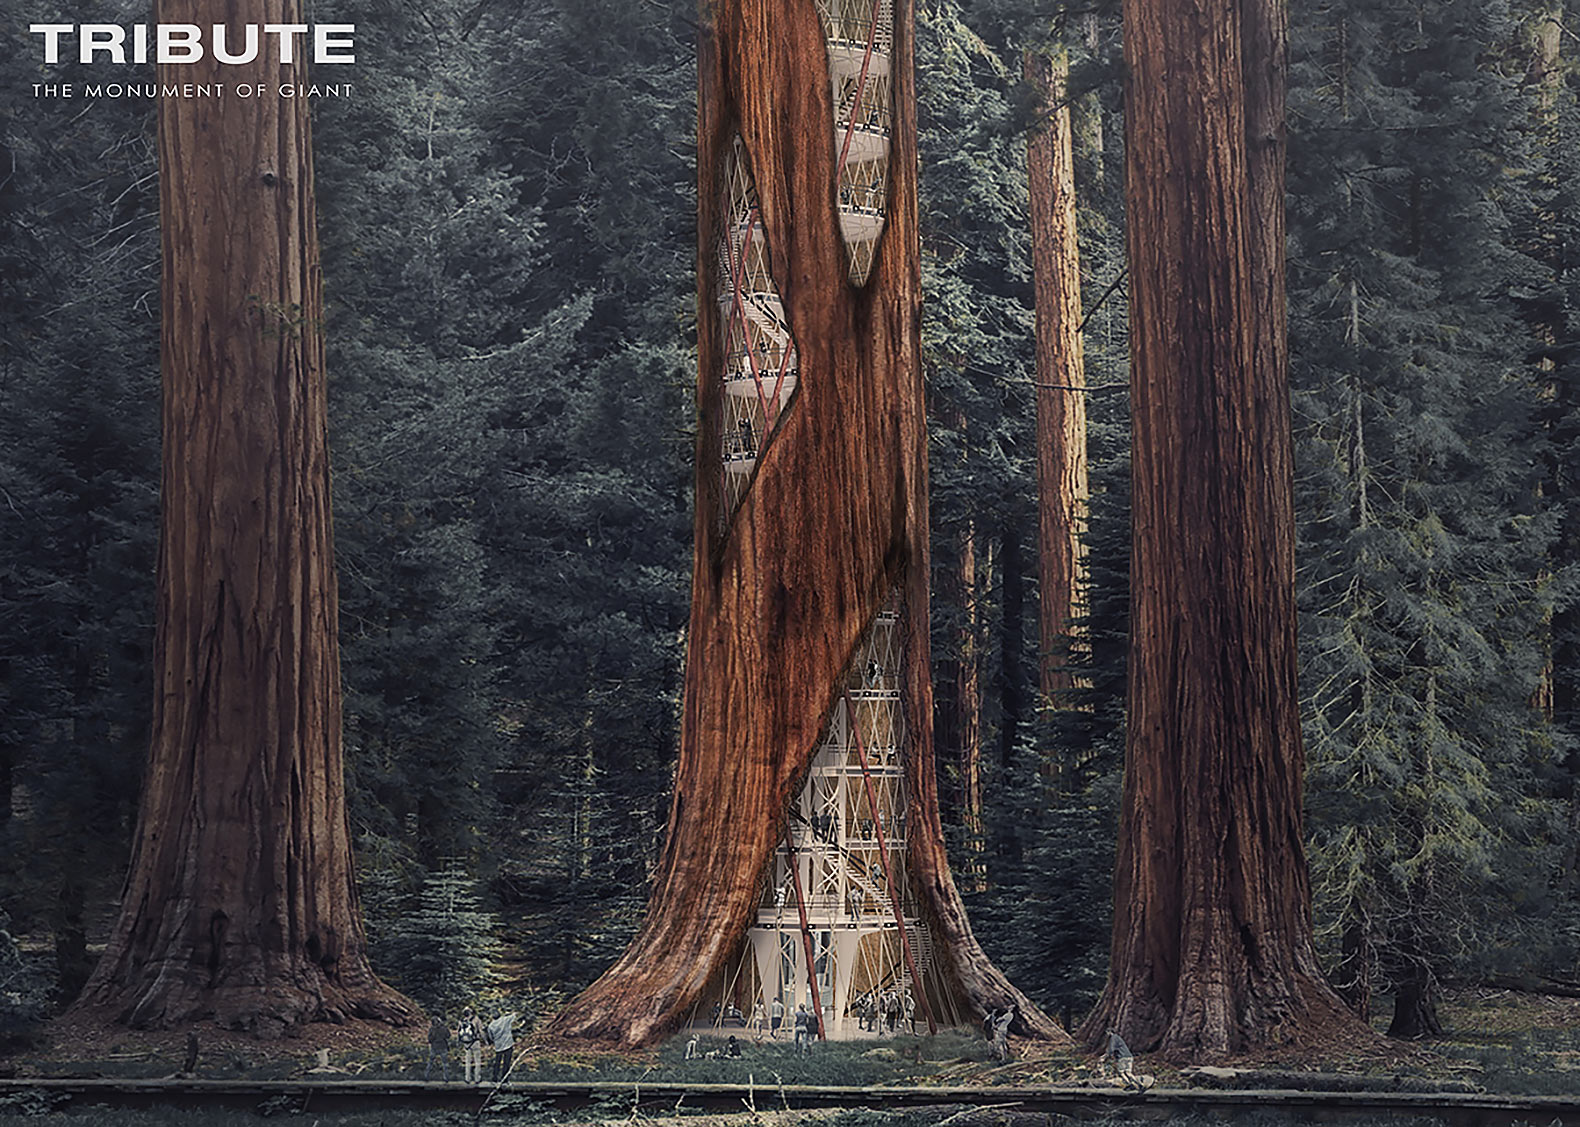 Giant sequoia skyscrapers designed to keep rotted trees standing